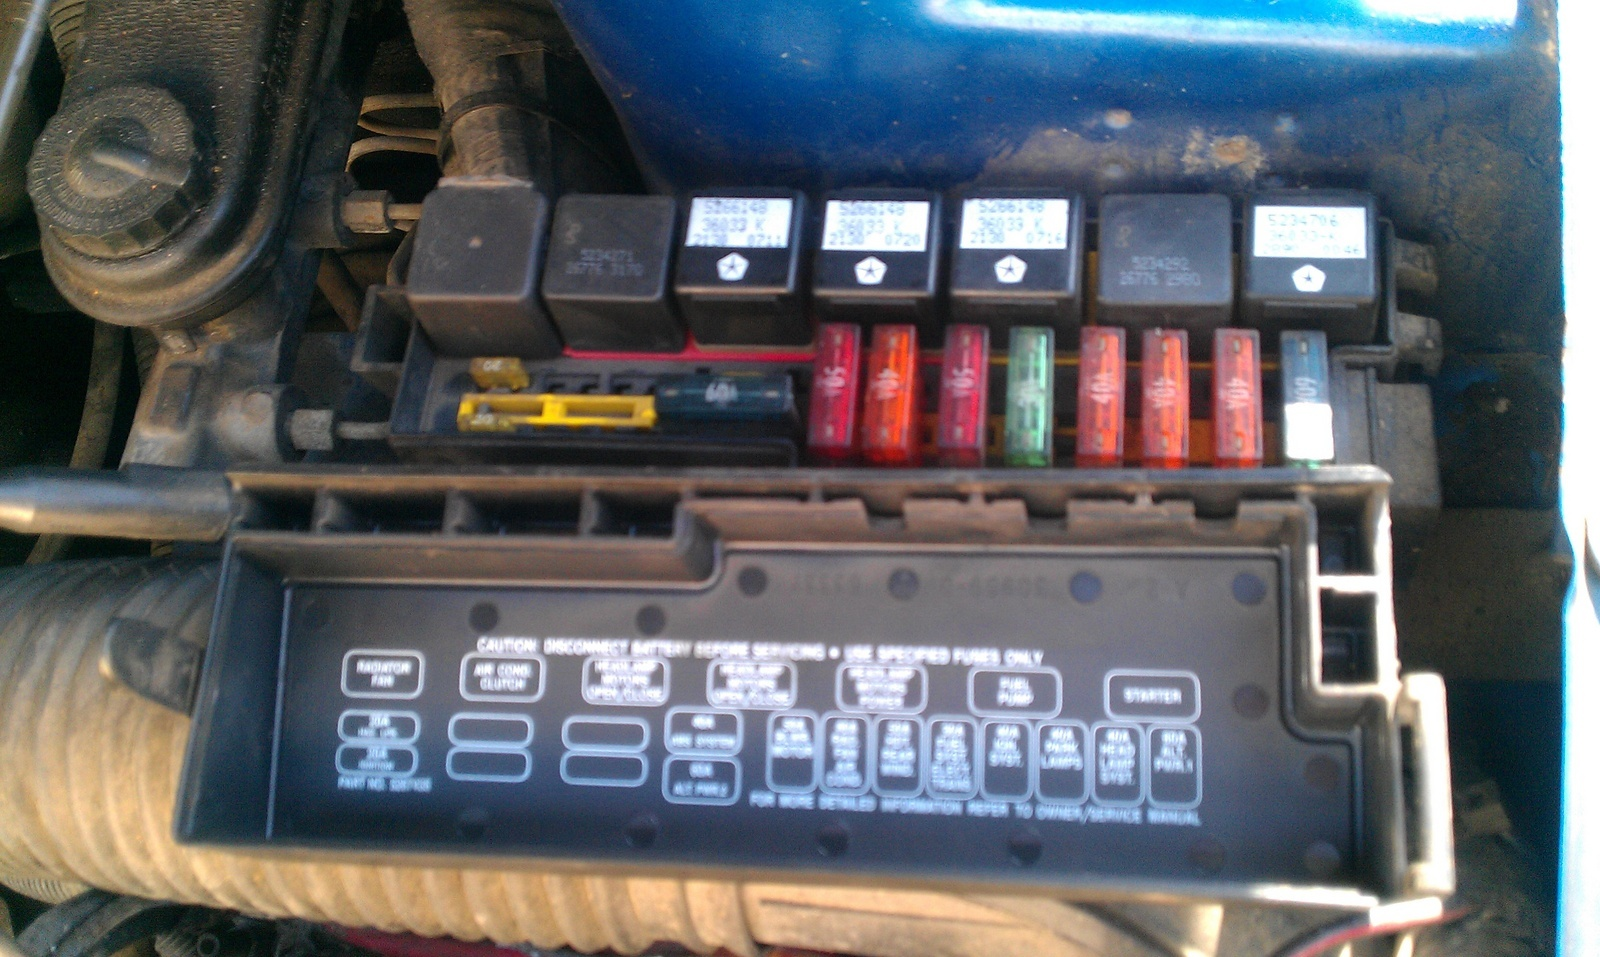 2009 Crown Victoria Fuse Box Diagram Wiring Library 05 Vic Dodge Daytona Questions My Fuel Pump Stays On After I Panel 2001